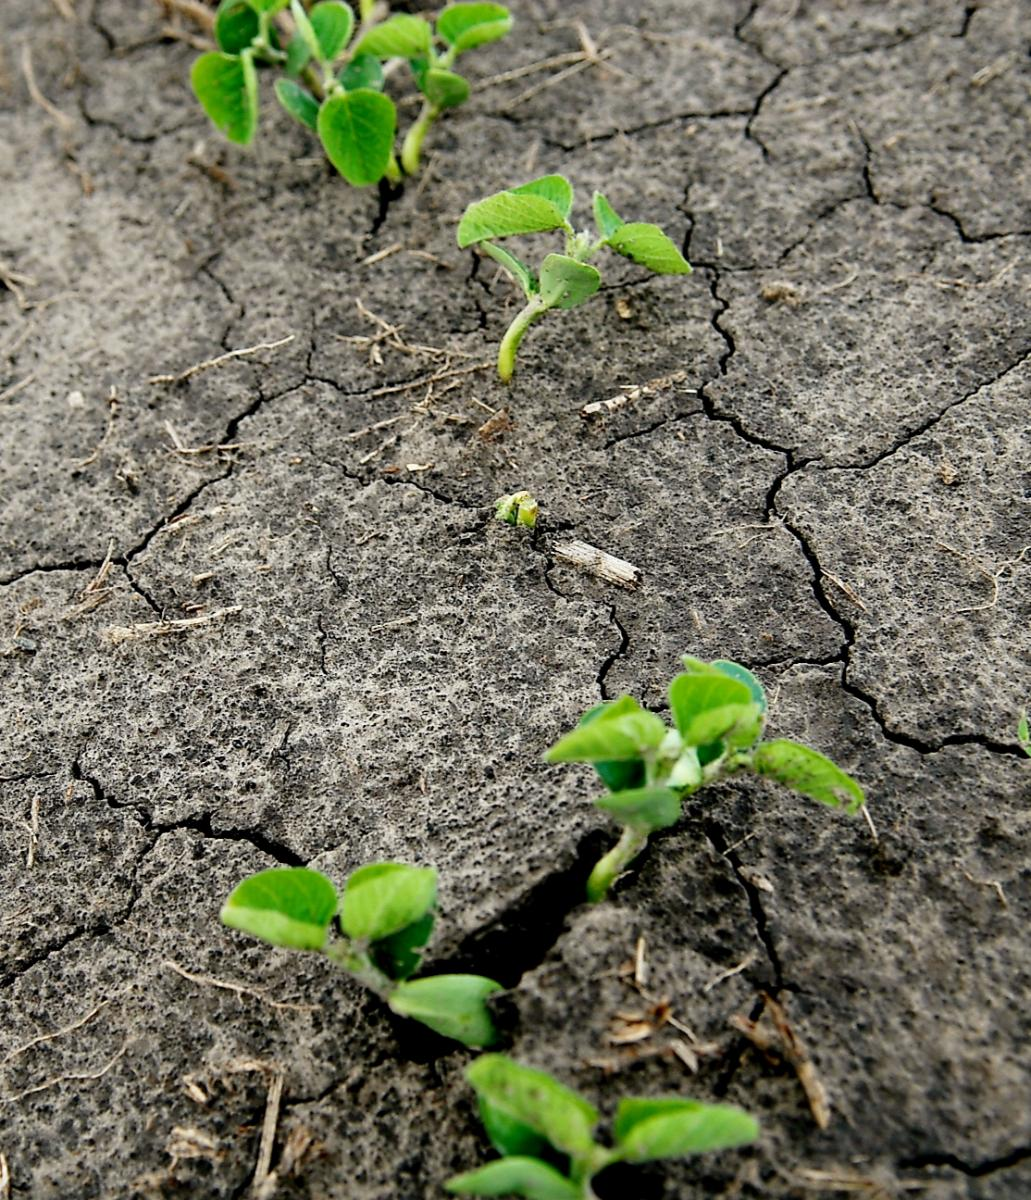 Soybean emerging in a field